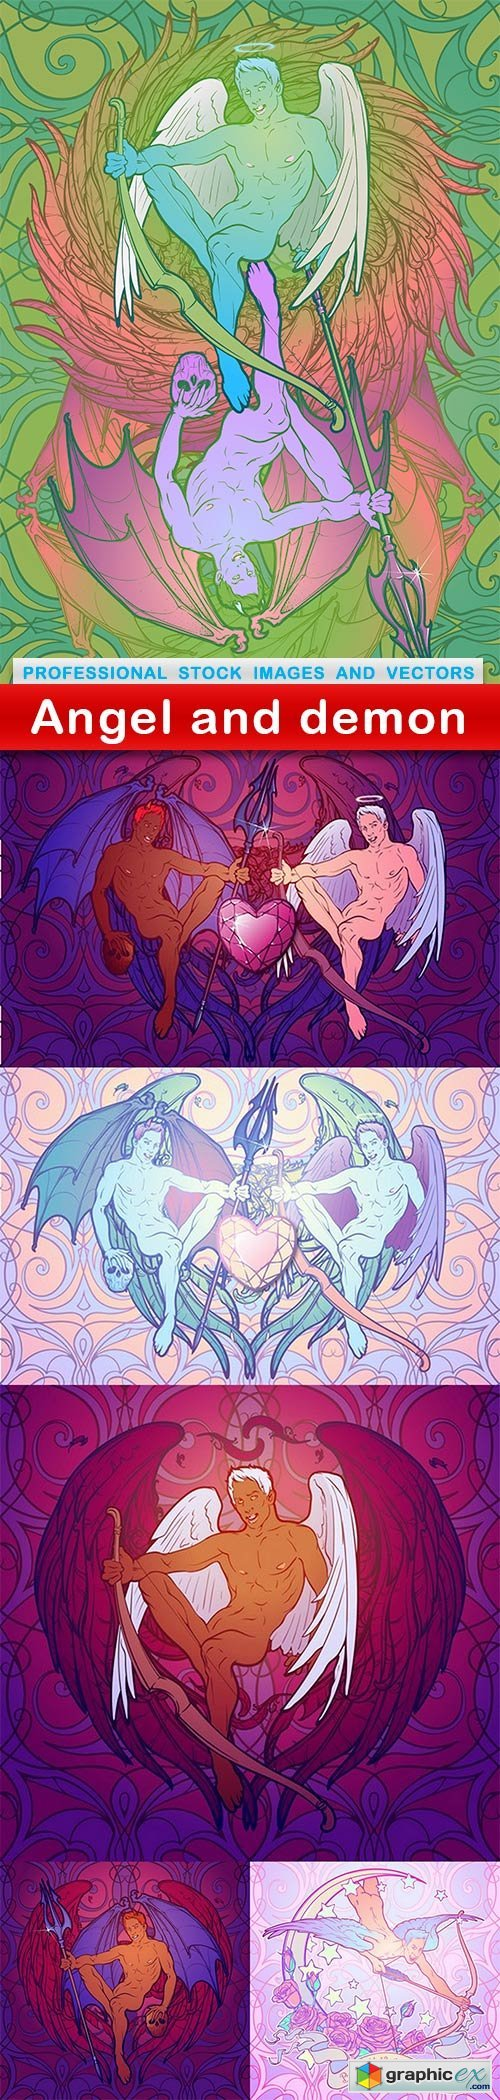 Angel and demon - 6 EPS